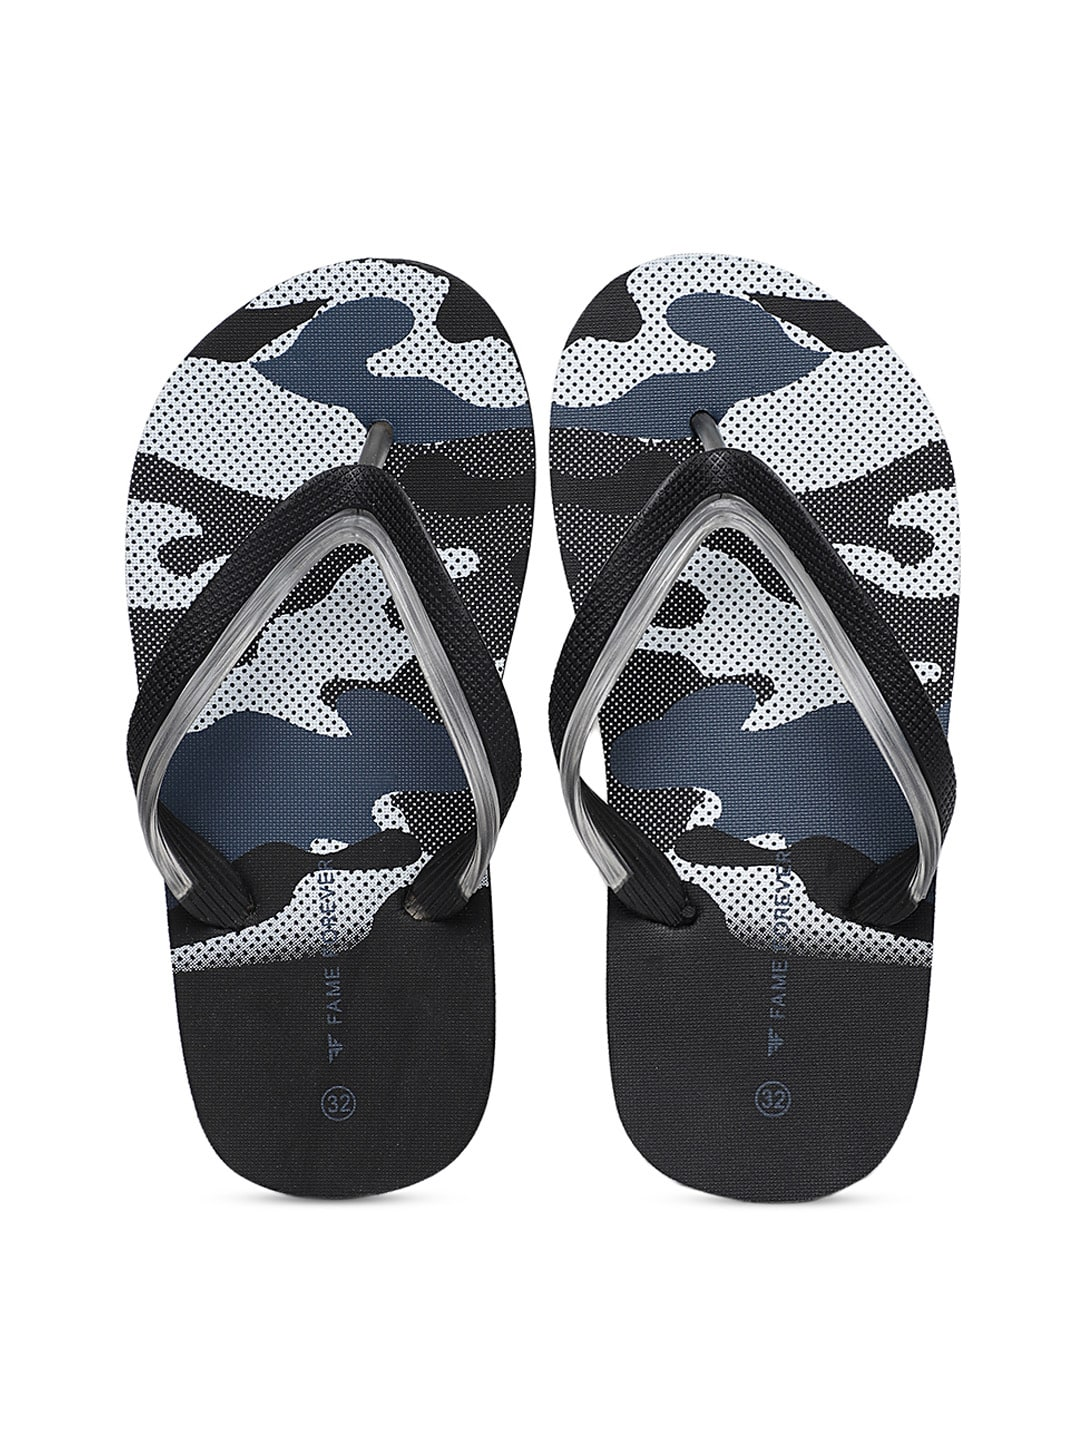 9b86717777454d Forca By Lifestyle By Lifestyle Flip Flops Sandal - Buy Forca By Lifestyle  By Lifestyle Flip Flops Sandal online in India